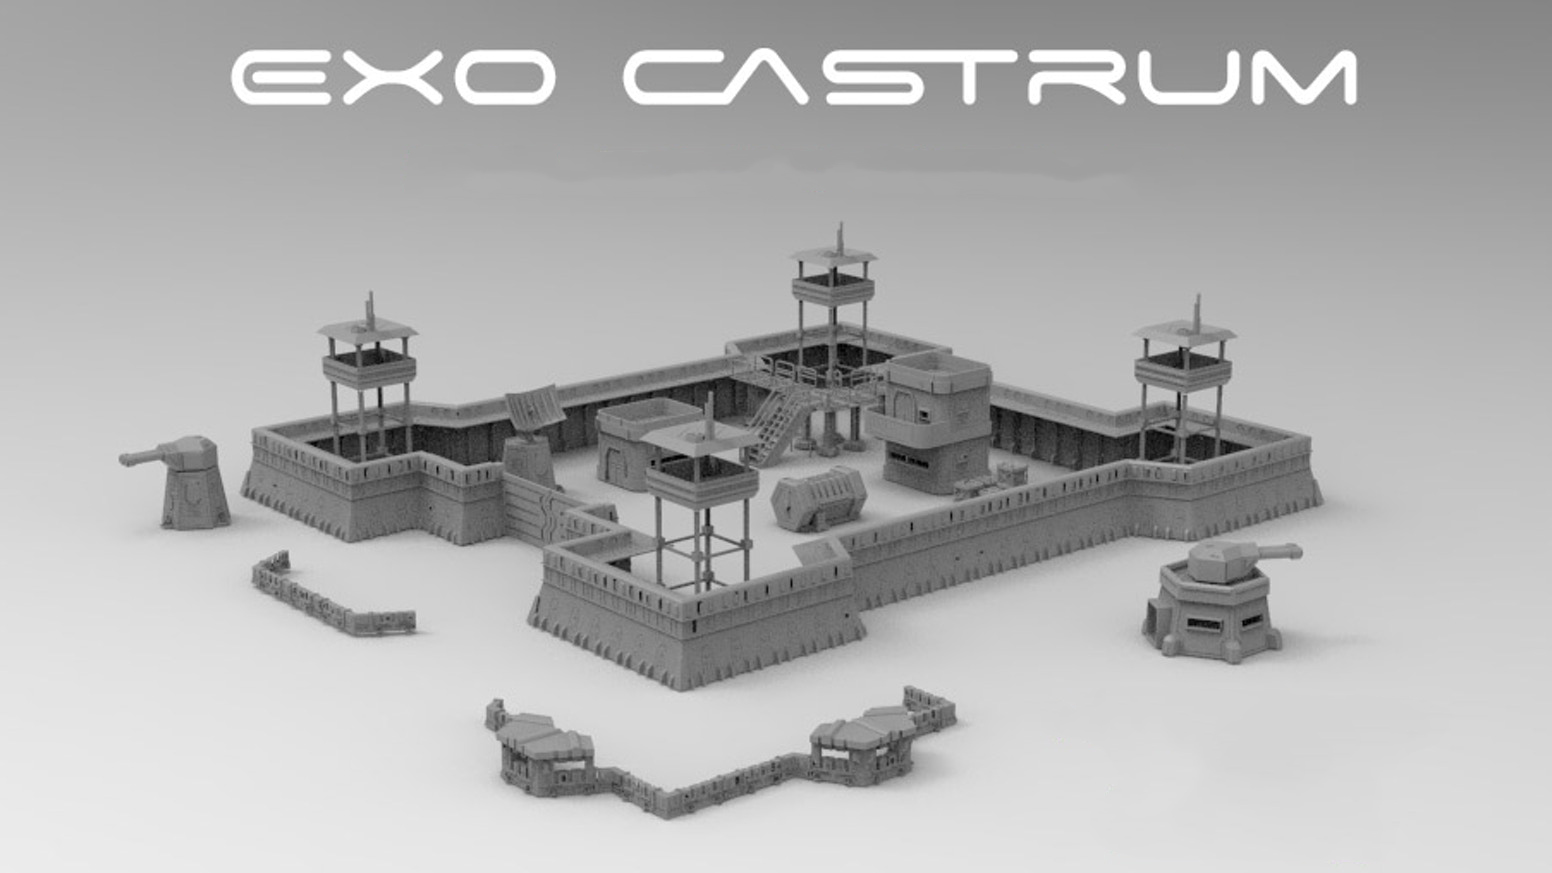 Exo Castrum Fortress